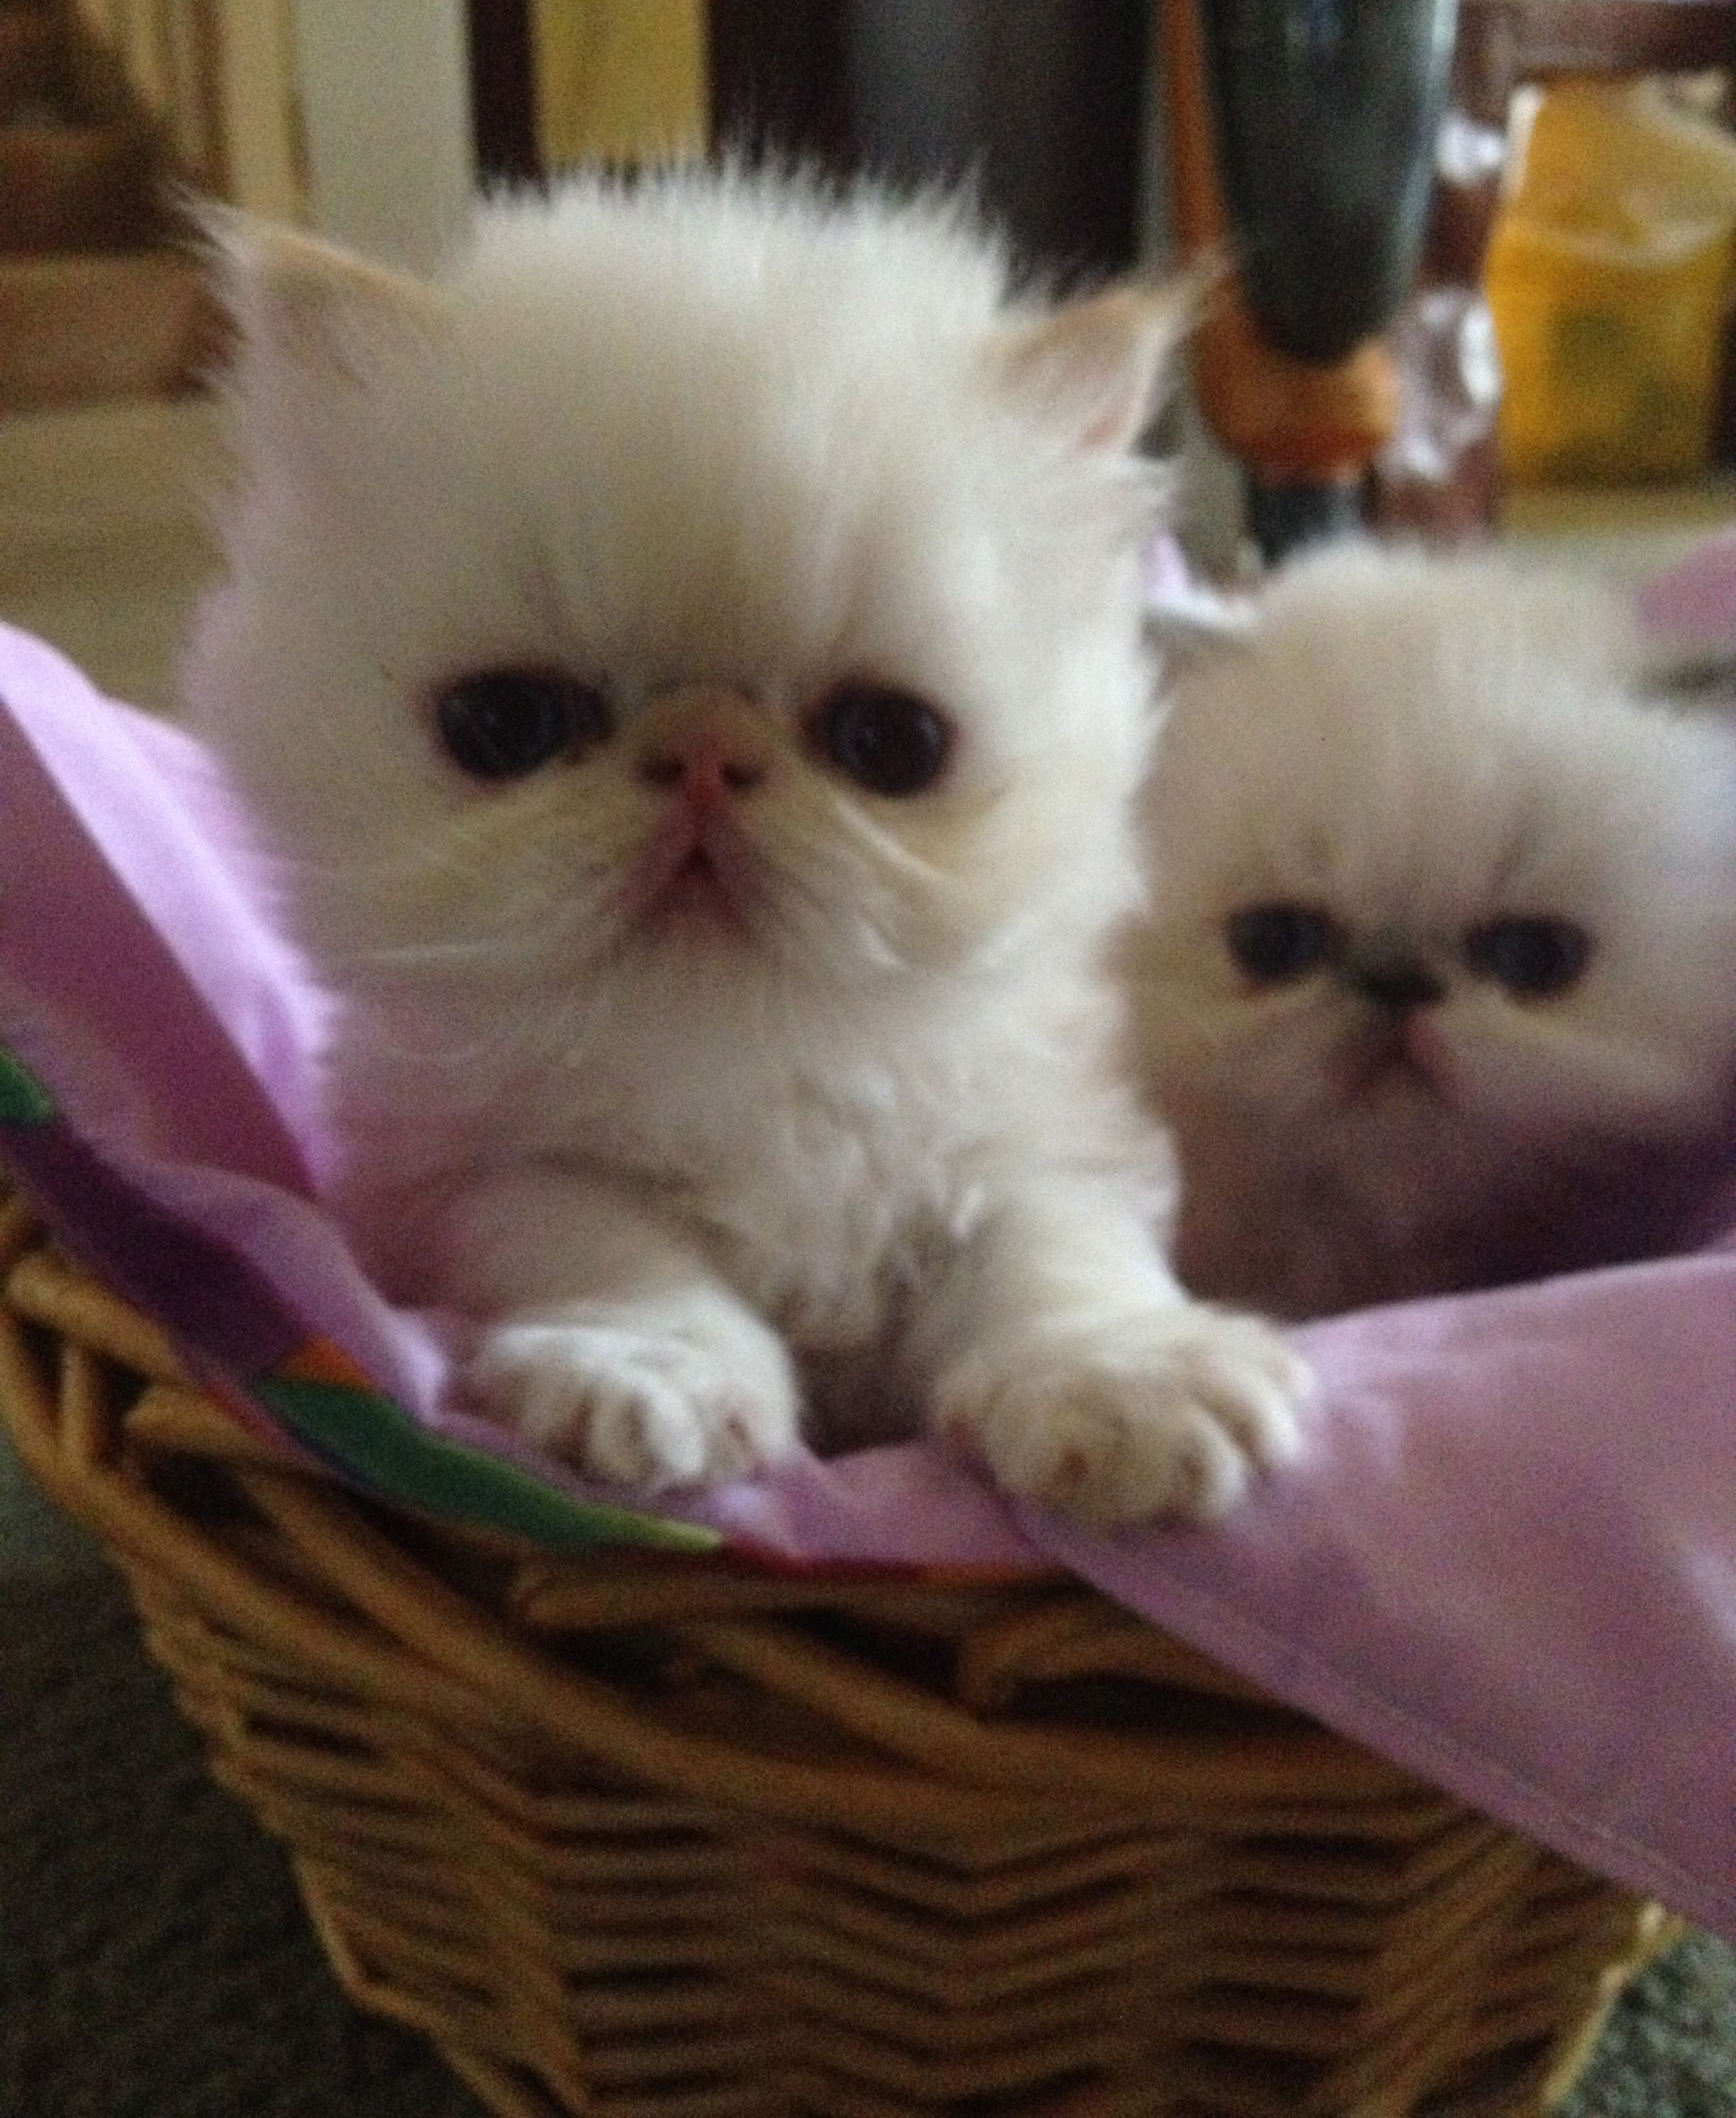 Himalayan Kittens for Sale Sydney Australia see our website